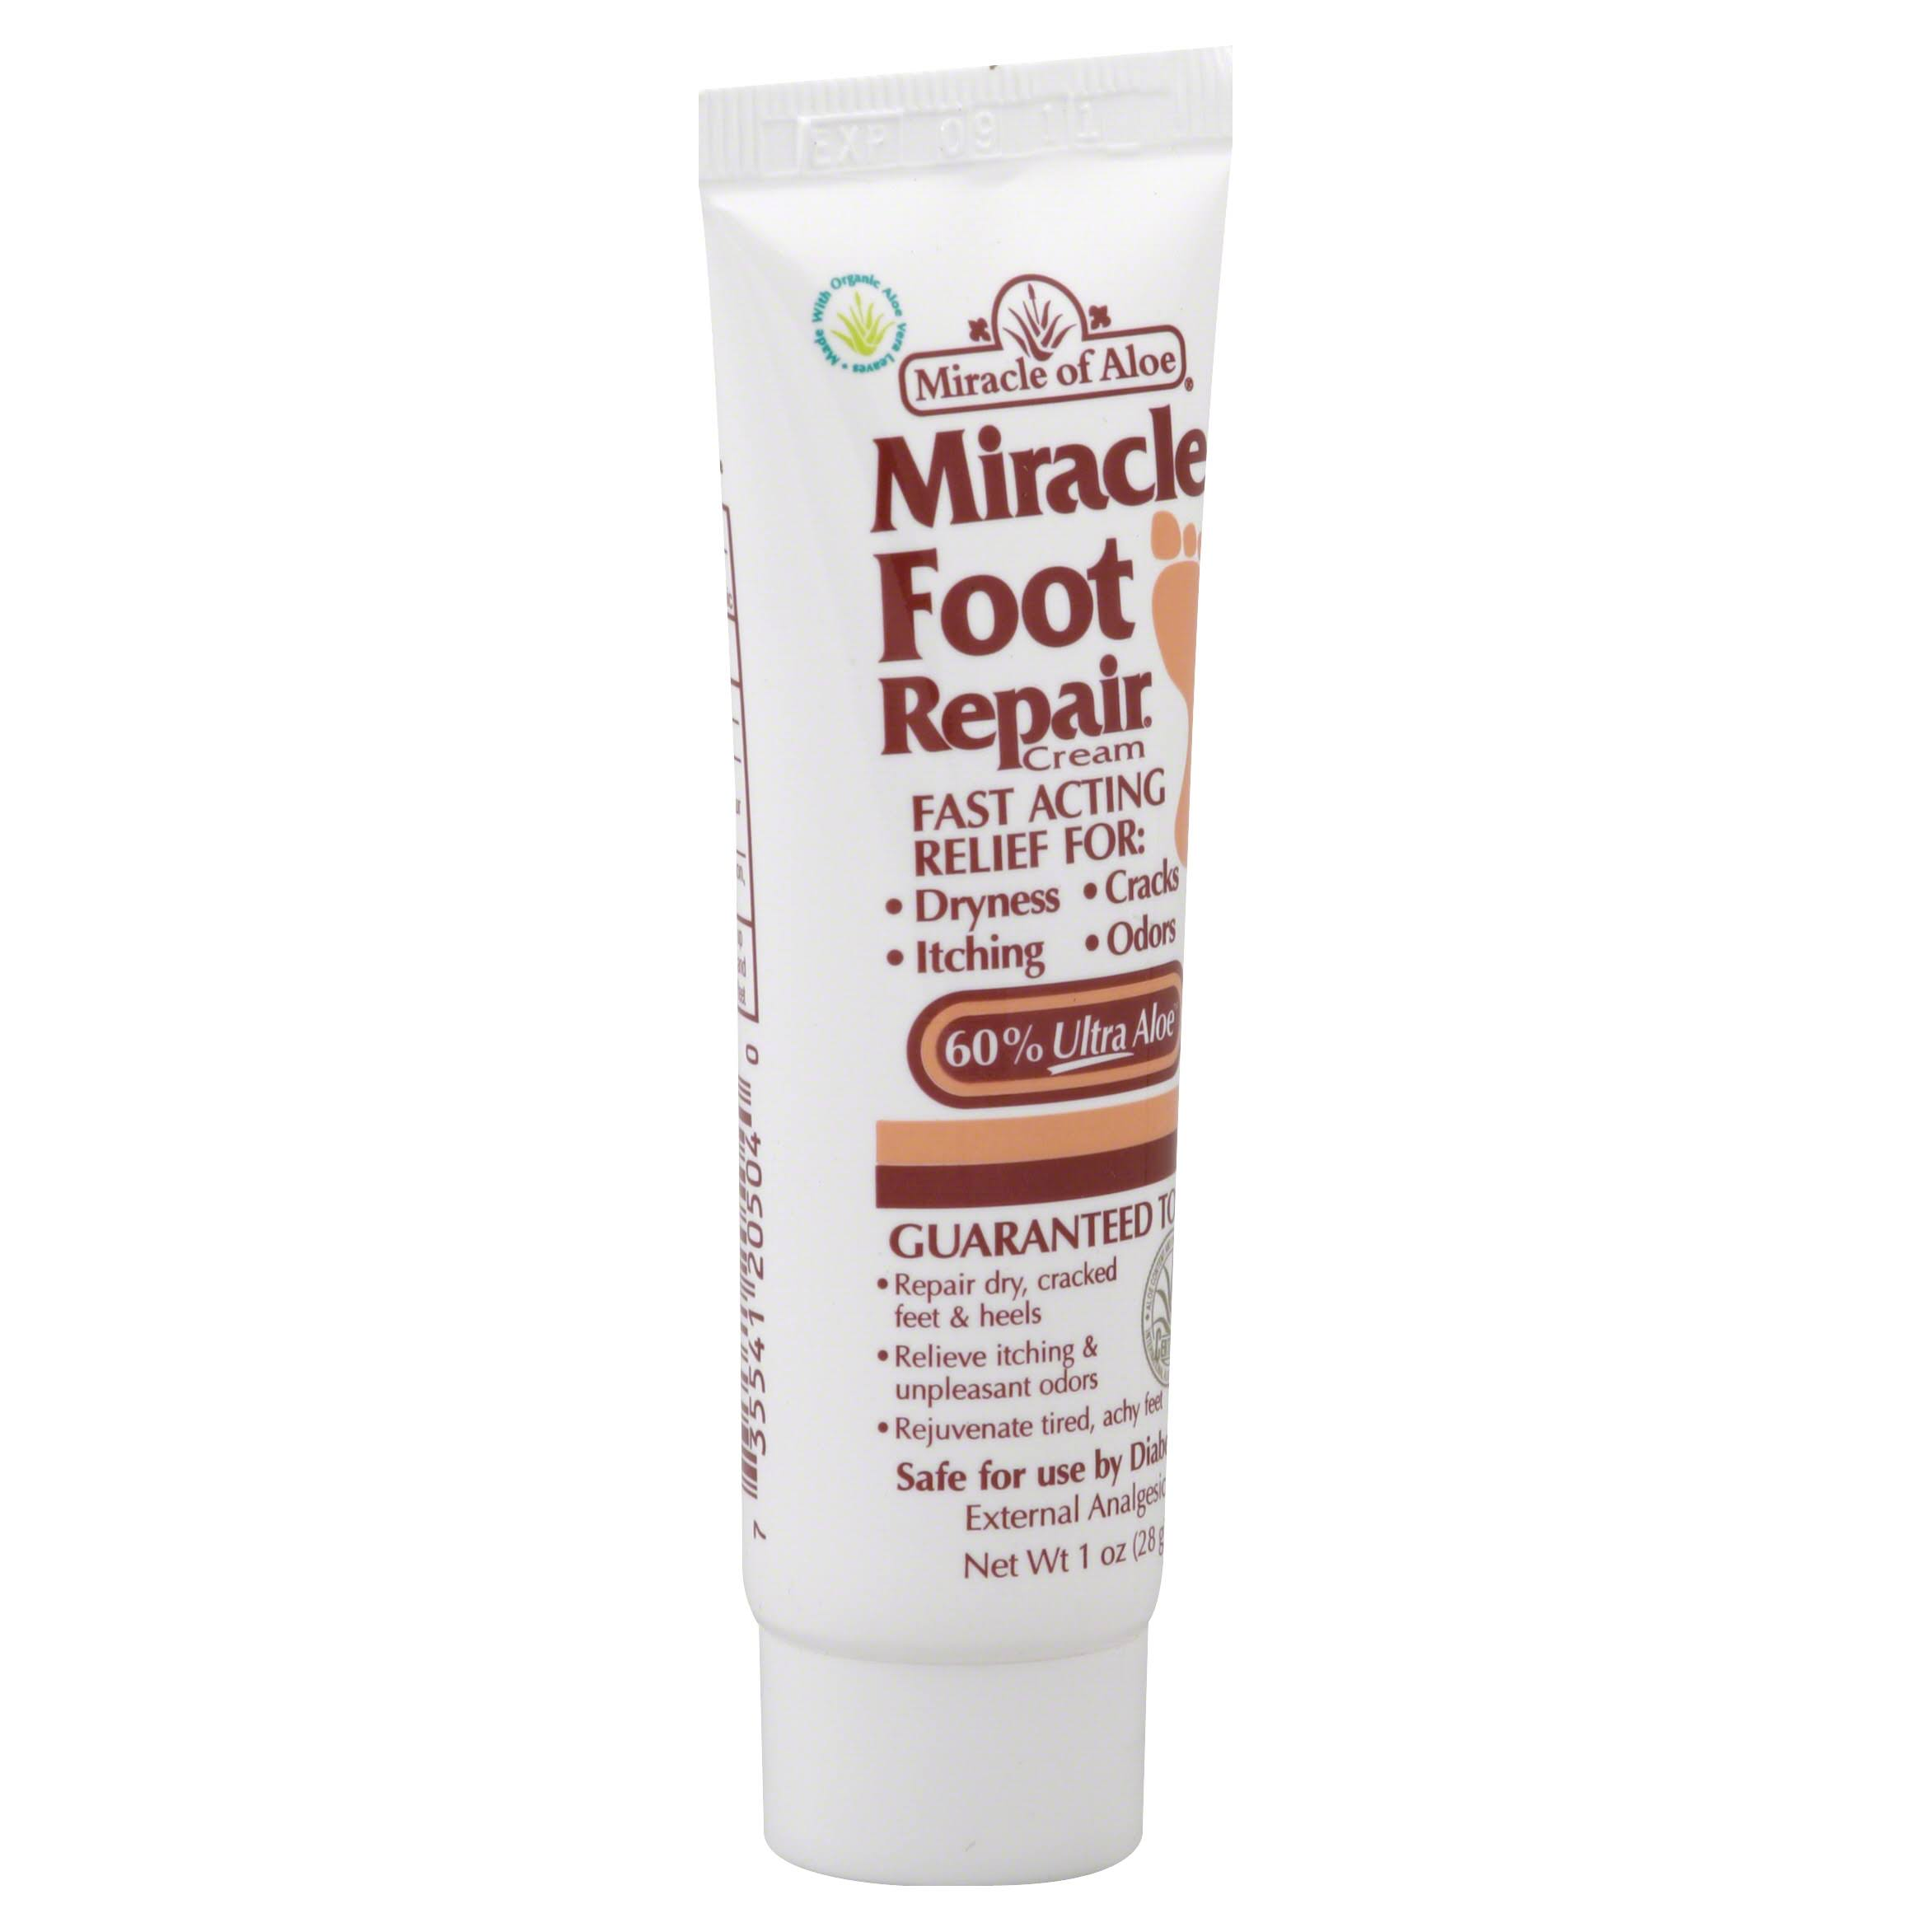 Miracle of Aloe Foot Repair Cream - 30ml